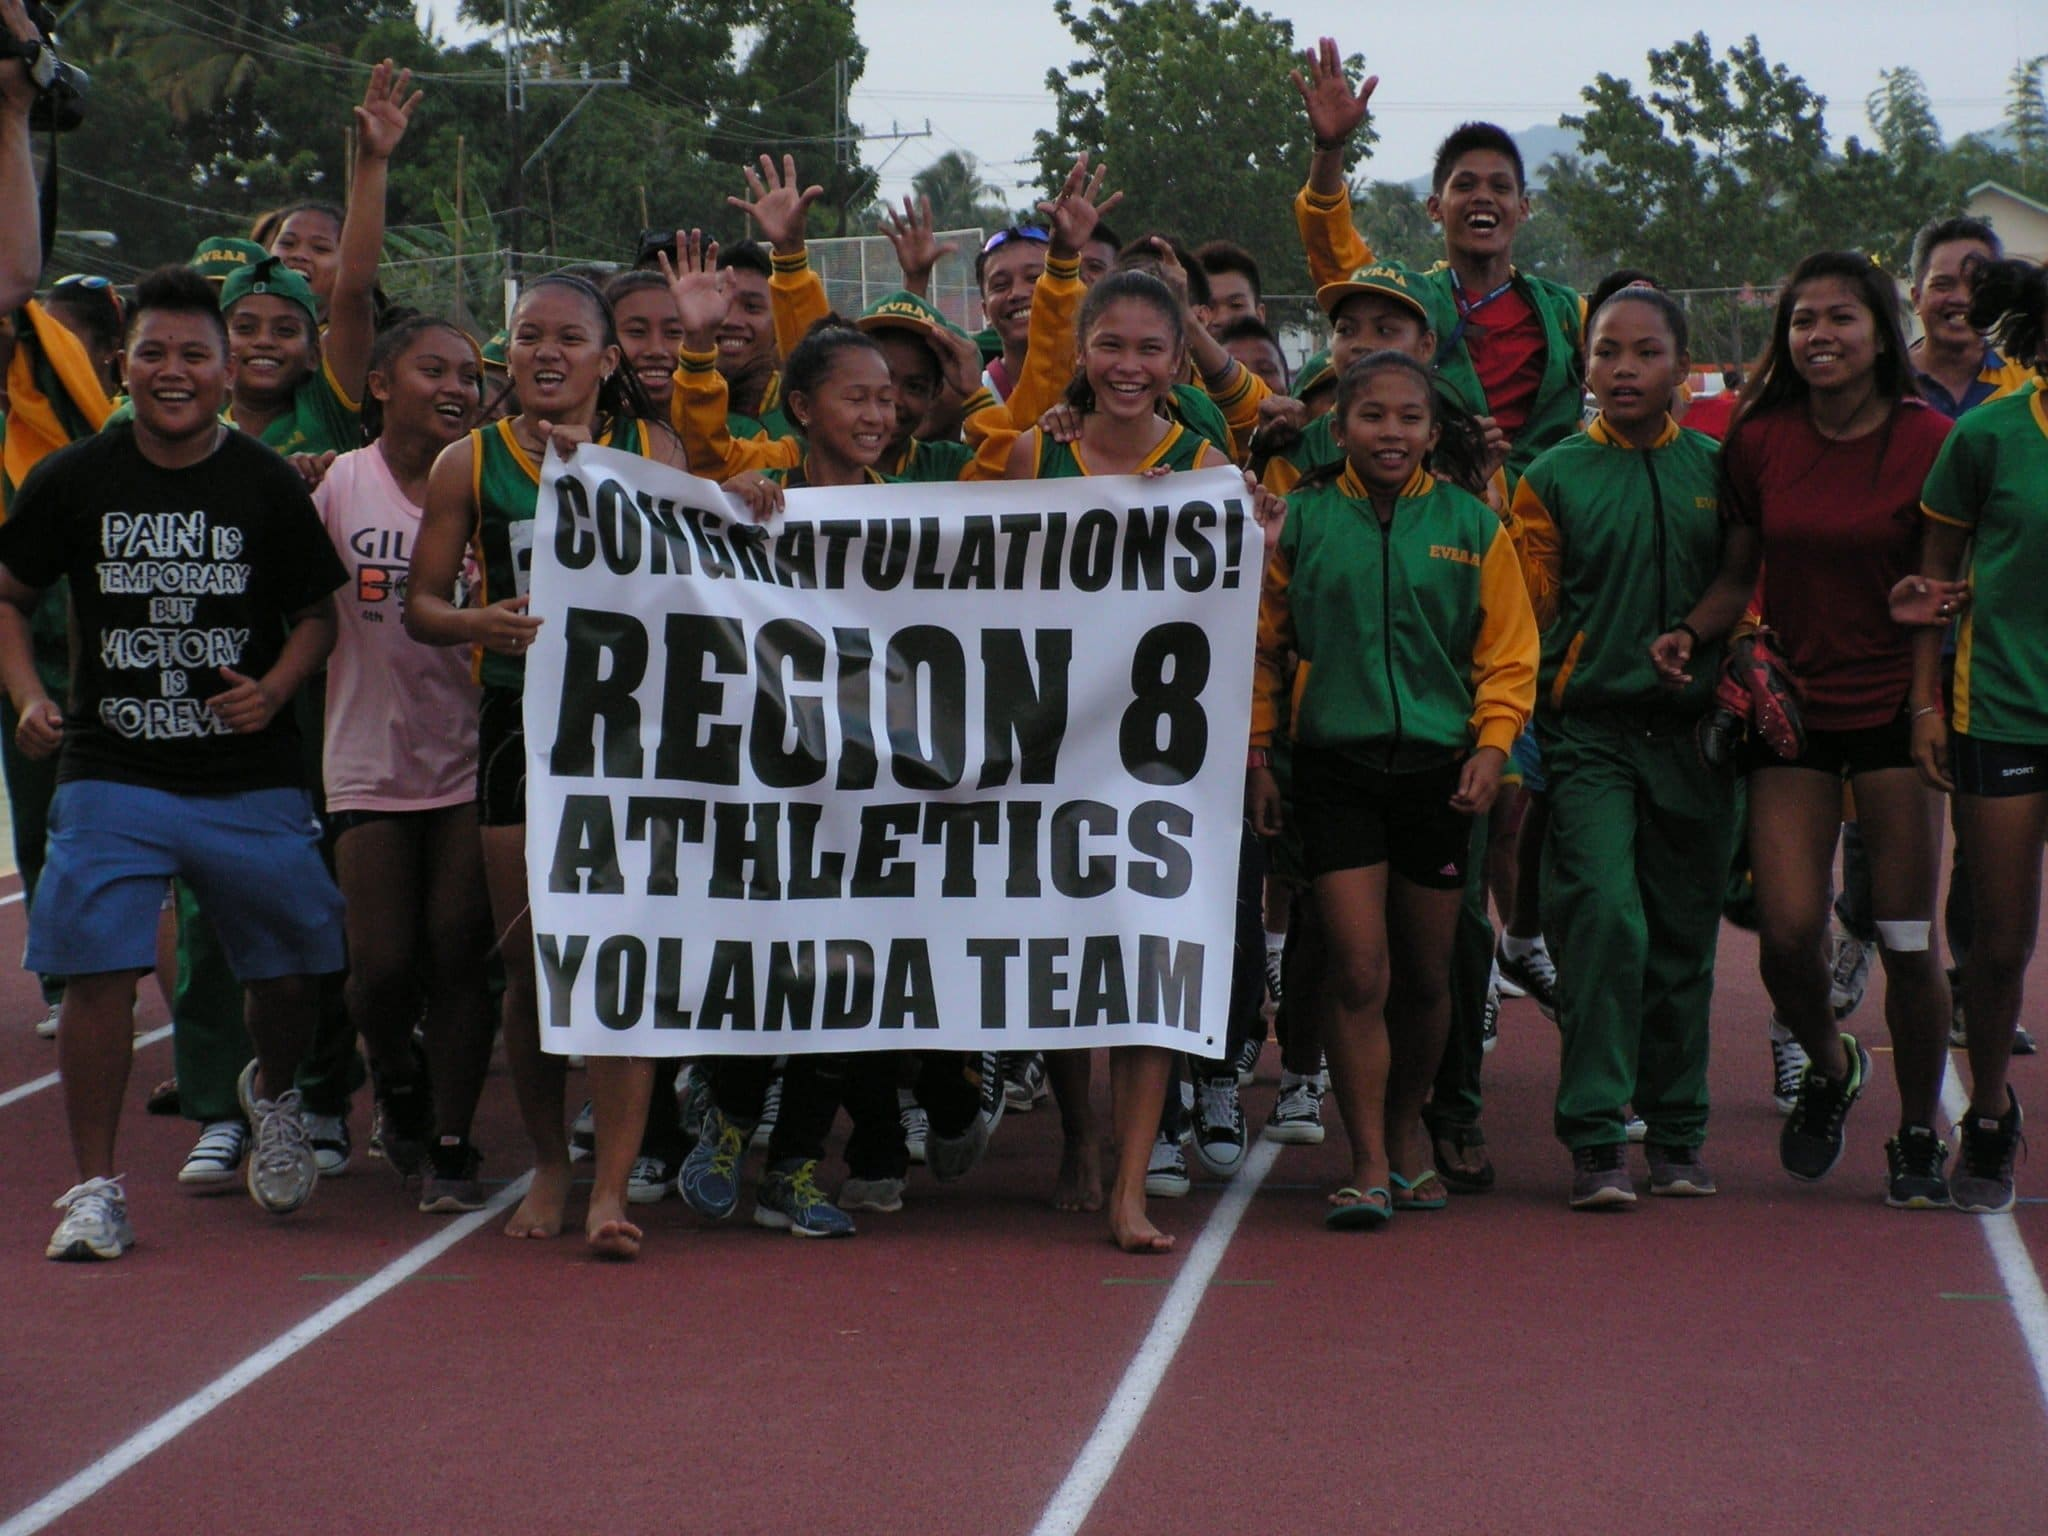 """Team Yplanda"" in their Victory March."